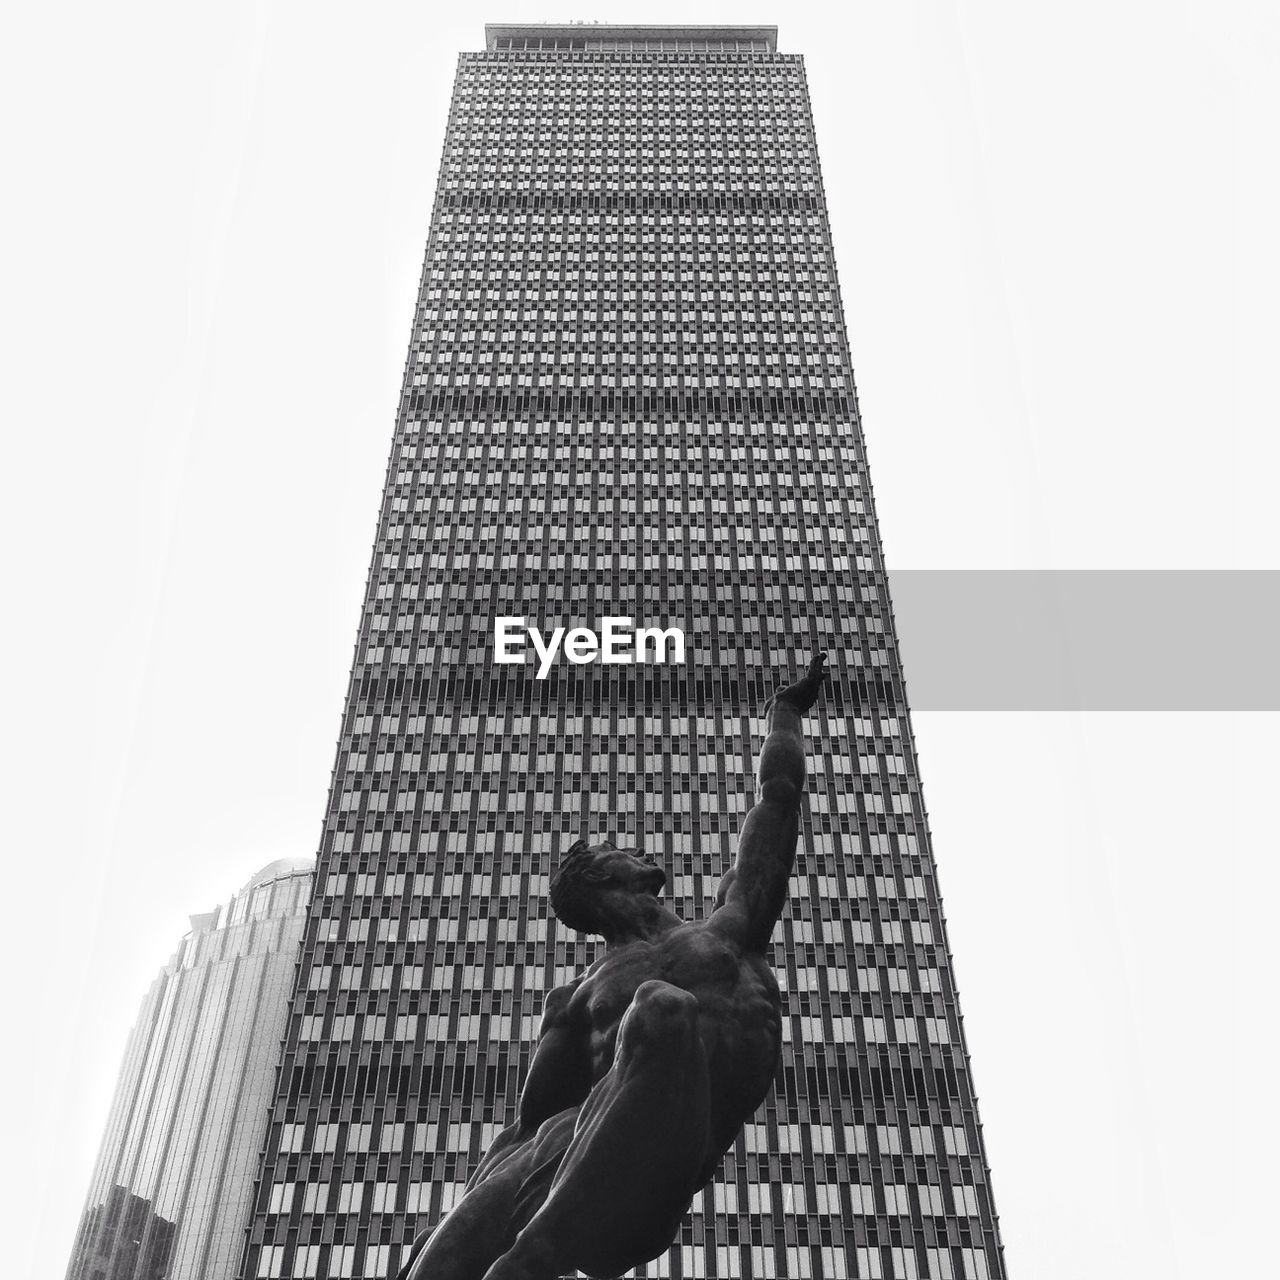 skyscraper, architecture, real people, built structure, building exterior, low angle view, one person, modern, day, human body part, outdoors, clear sky, city, sky, adult, people